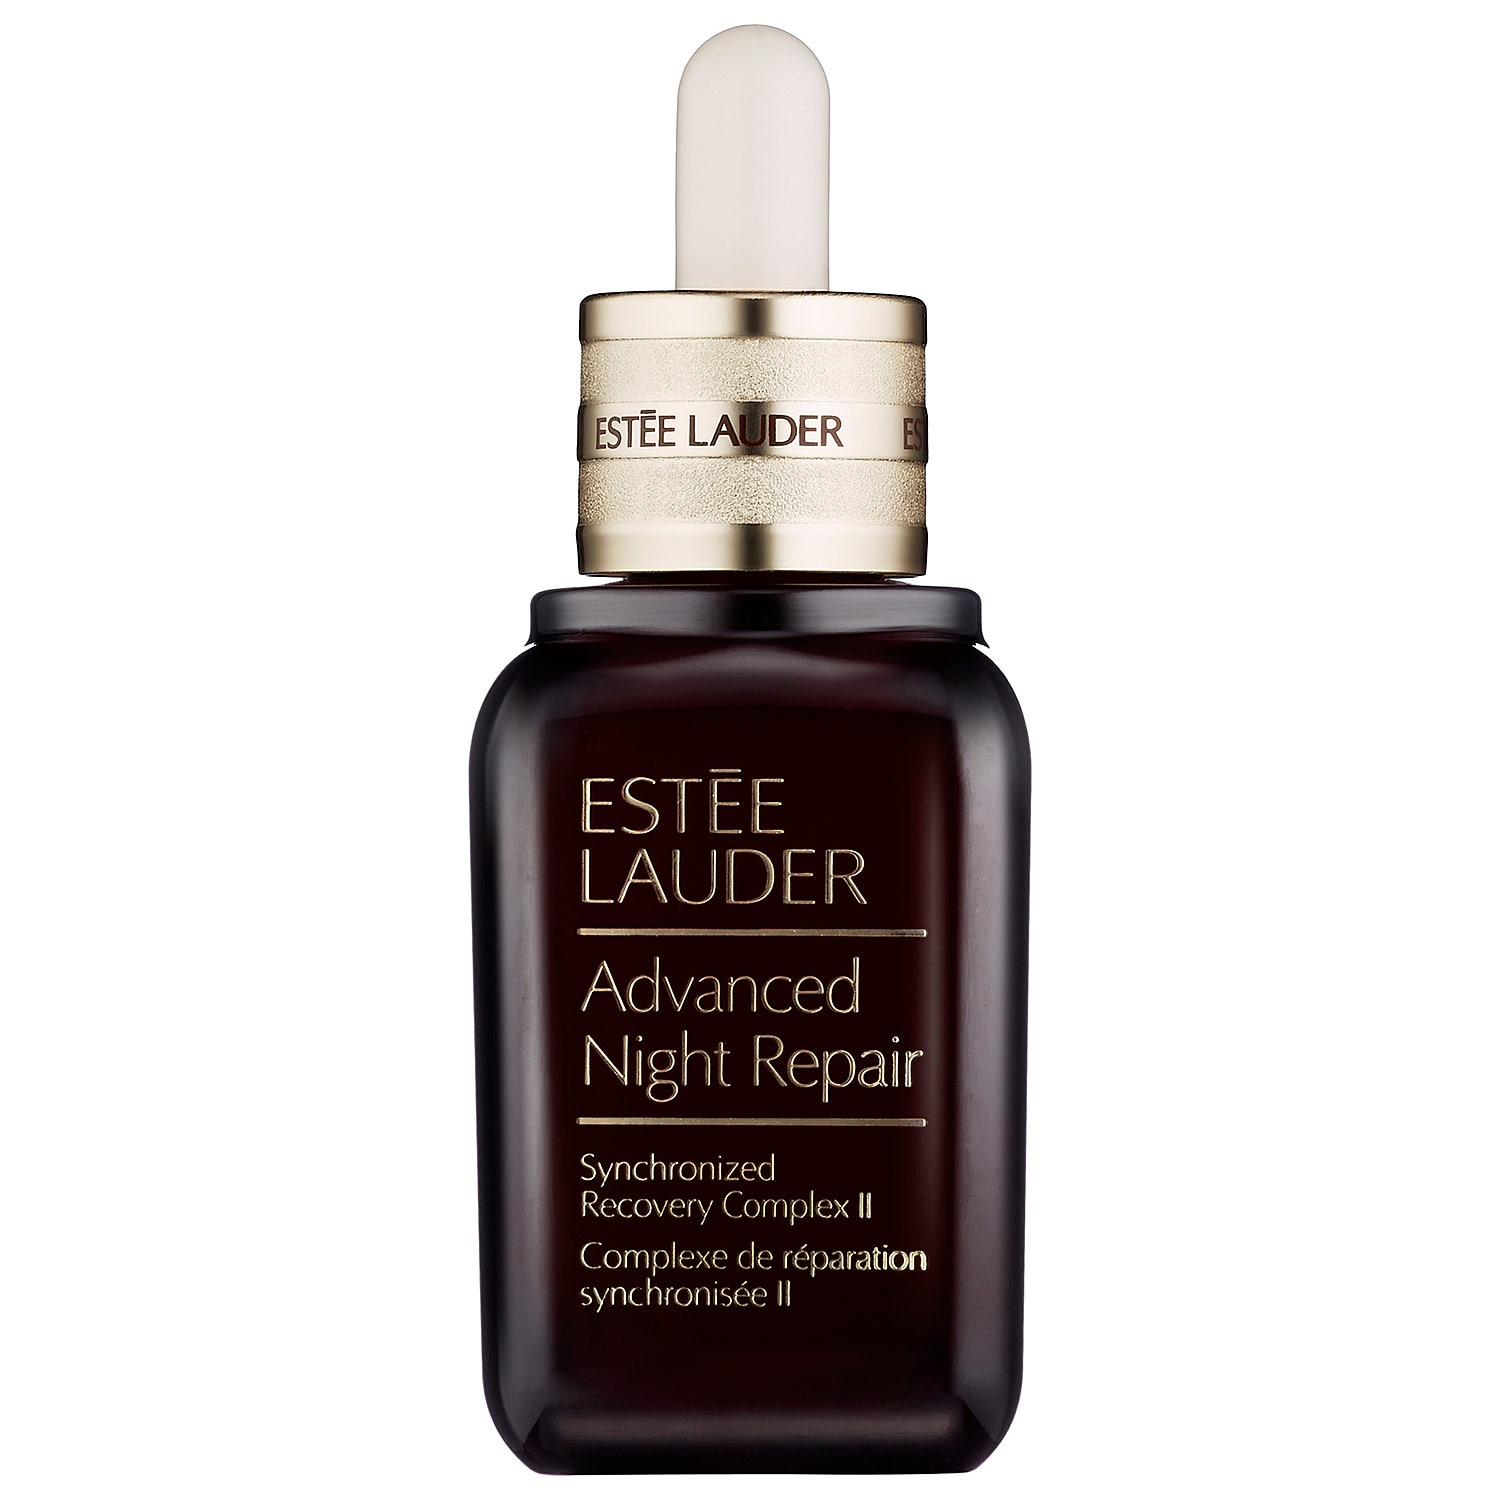 Estee Lauder - Advanced Night Repair Synchronized Recovery Complex II